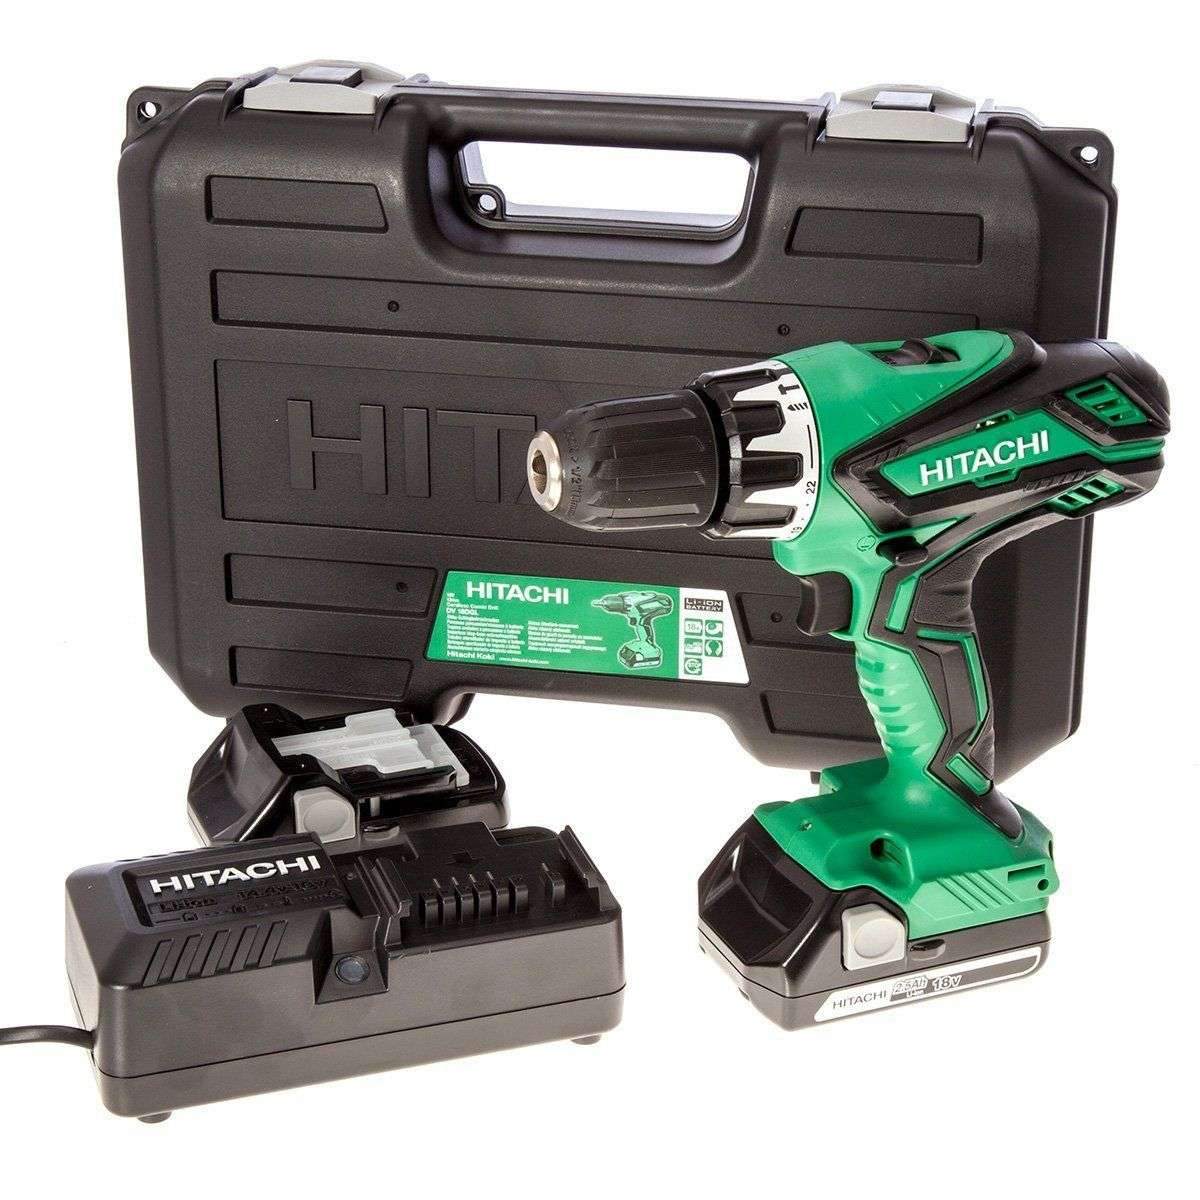 Hitachi DV18DGL-JF 18V Li-ion Cordless Combi Drill with 2 x 2.5Ah Batteries